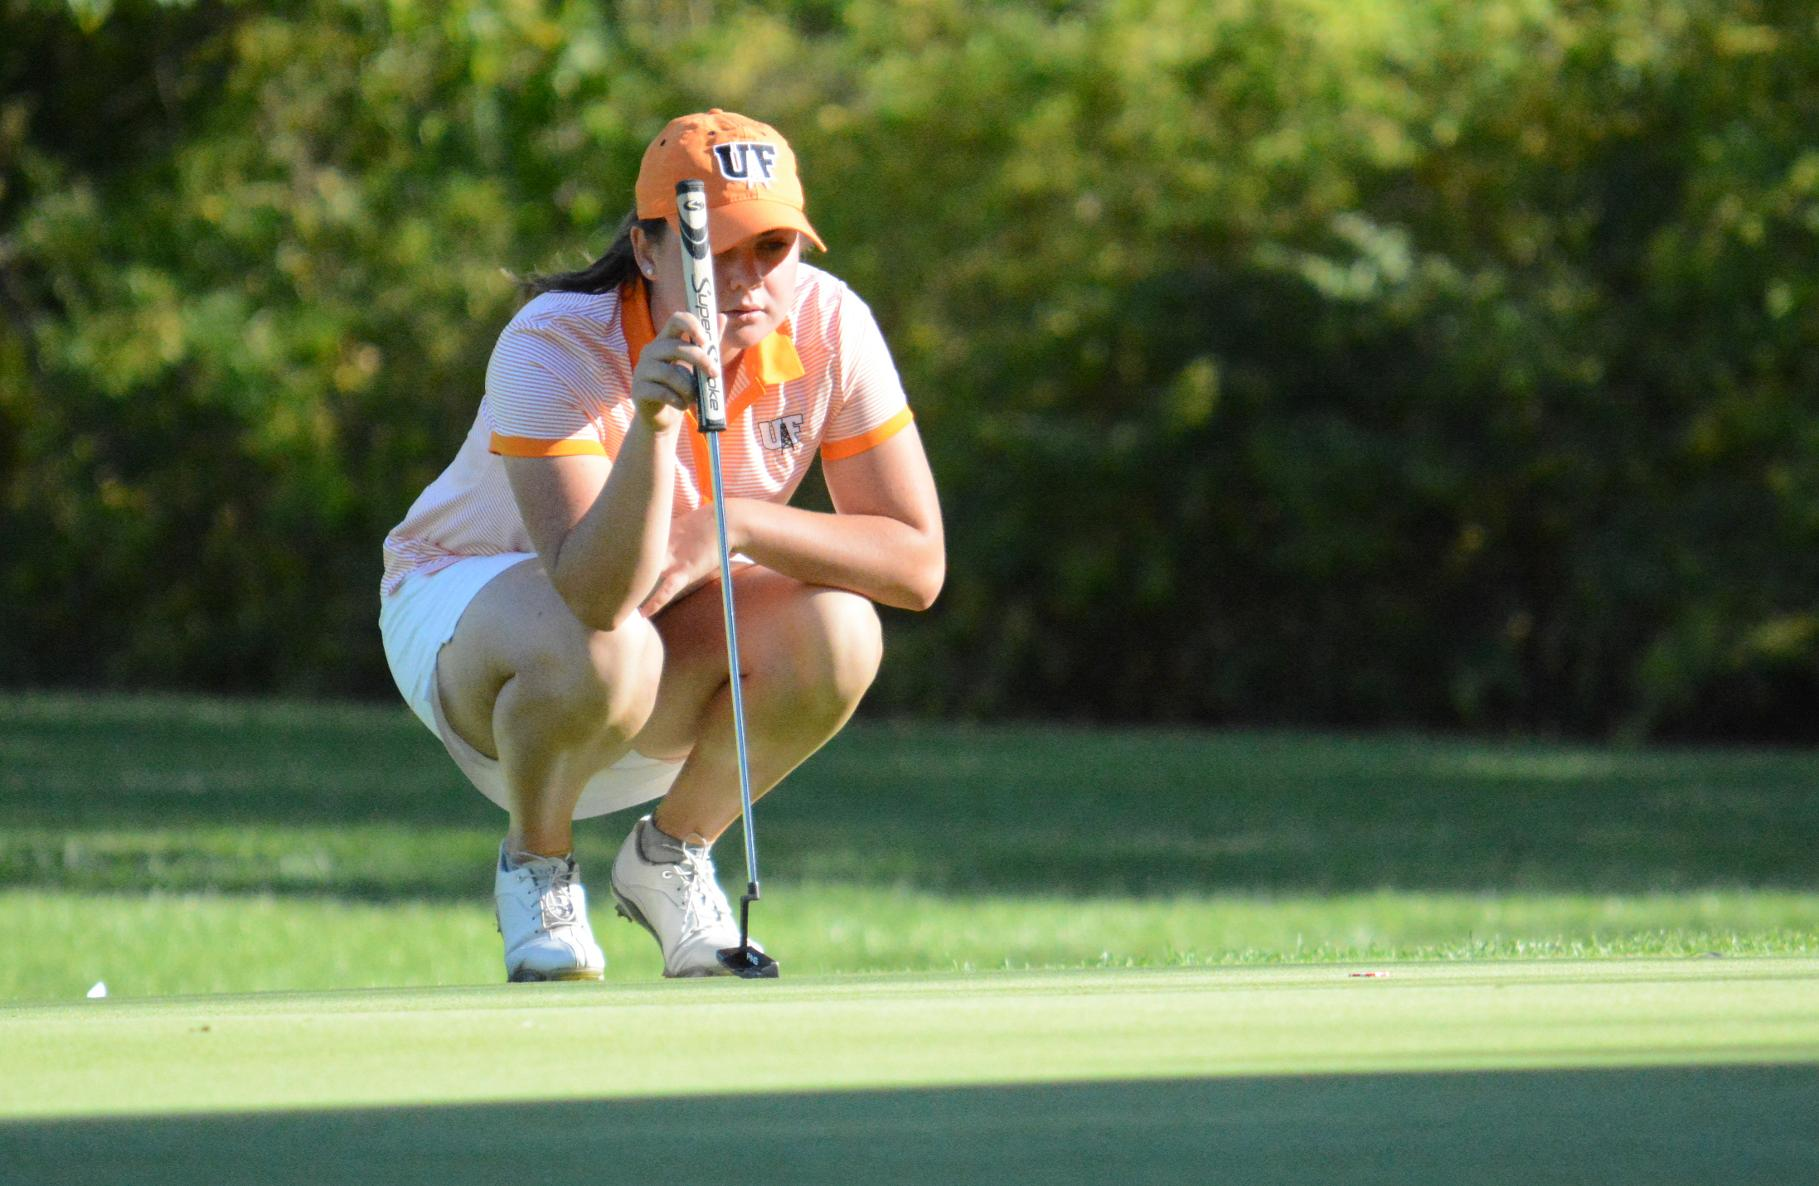 Wipper Leads After Round One in Nashville